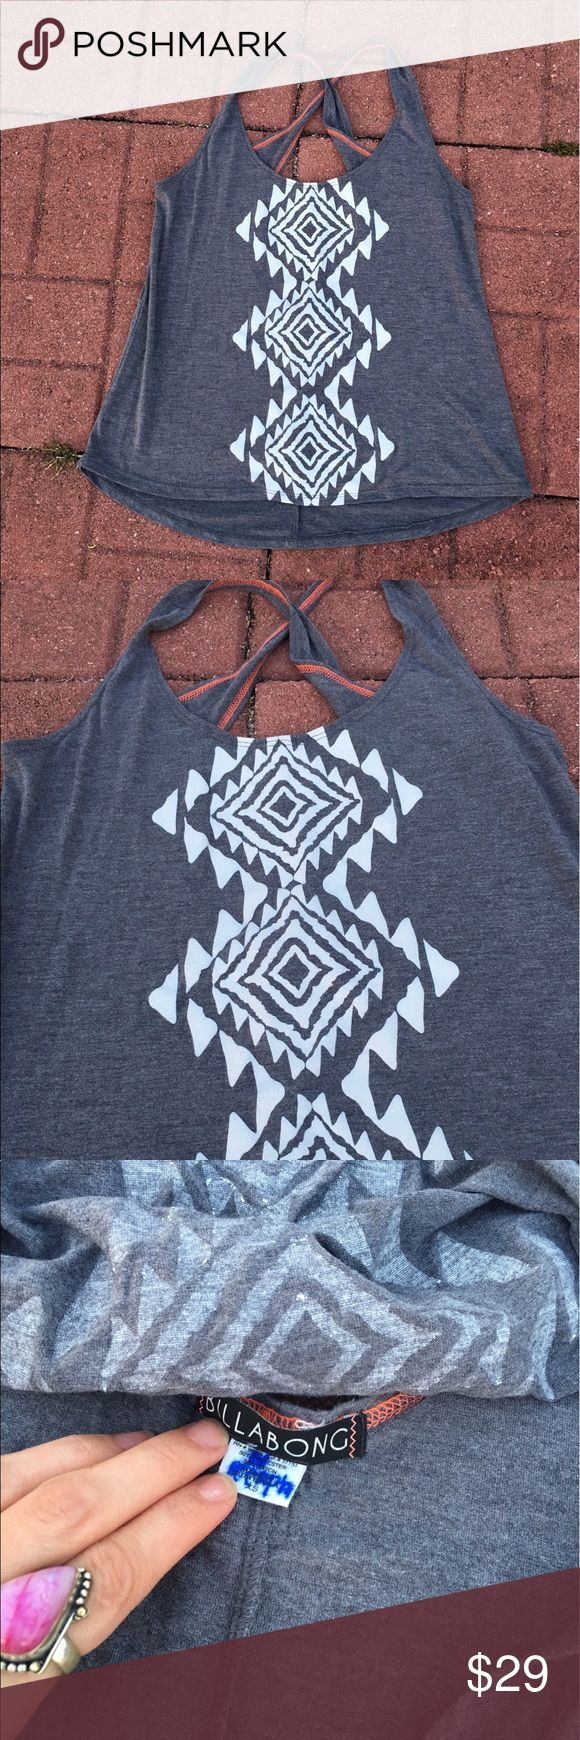 Billabong Aztec Gray Gypsy Festival TankTop cami (❁´◡`❁) ωḙℓḉ✺Պḙ (❁´◡`❁)   Description:   •Super soft gray light weight fabric  •White Aztec graphic on front  •CrissCross back    ❤️   Brand: Billabong    Size: XS    Condition: Excellent preowned shape. Worn once.    (please refer to all photos Don't hesitate to ask ANY and ALL question before Bidding/Buying)   Ask about combined shipping and discounts! Billabong Tops Tank Tops